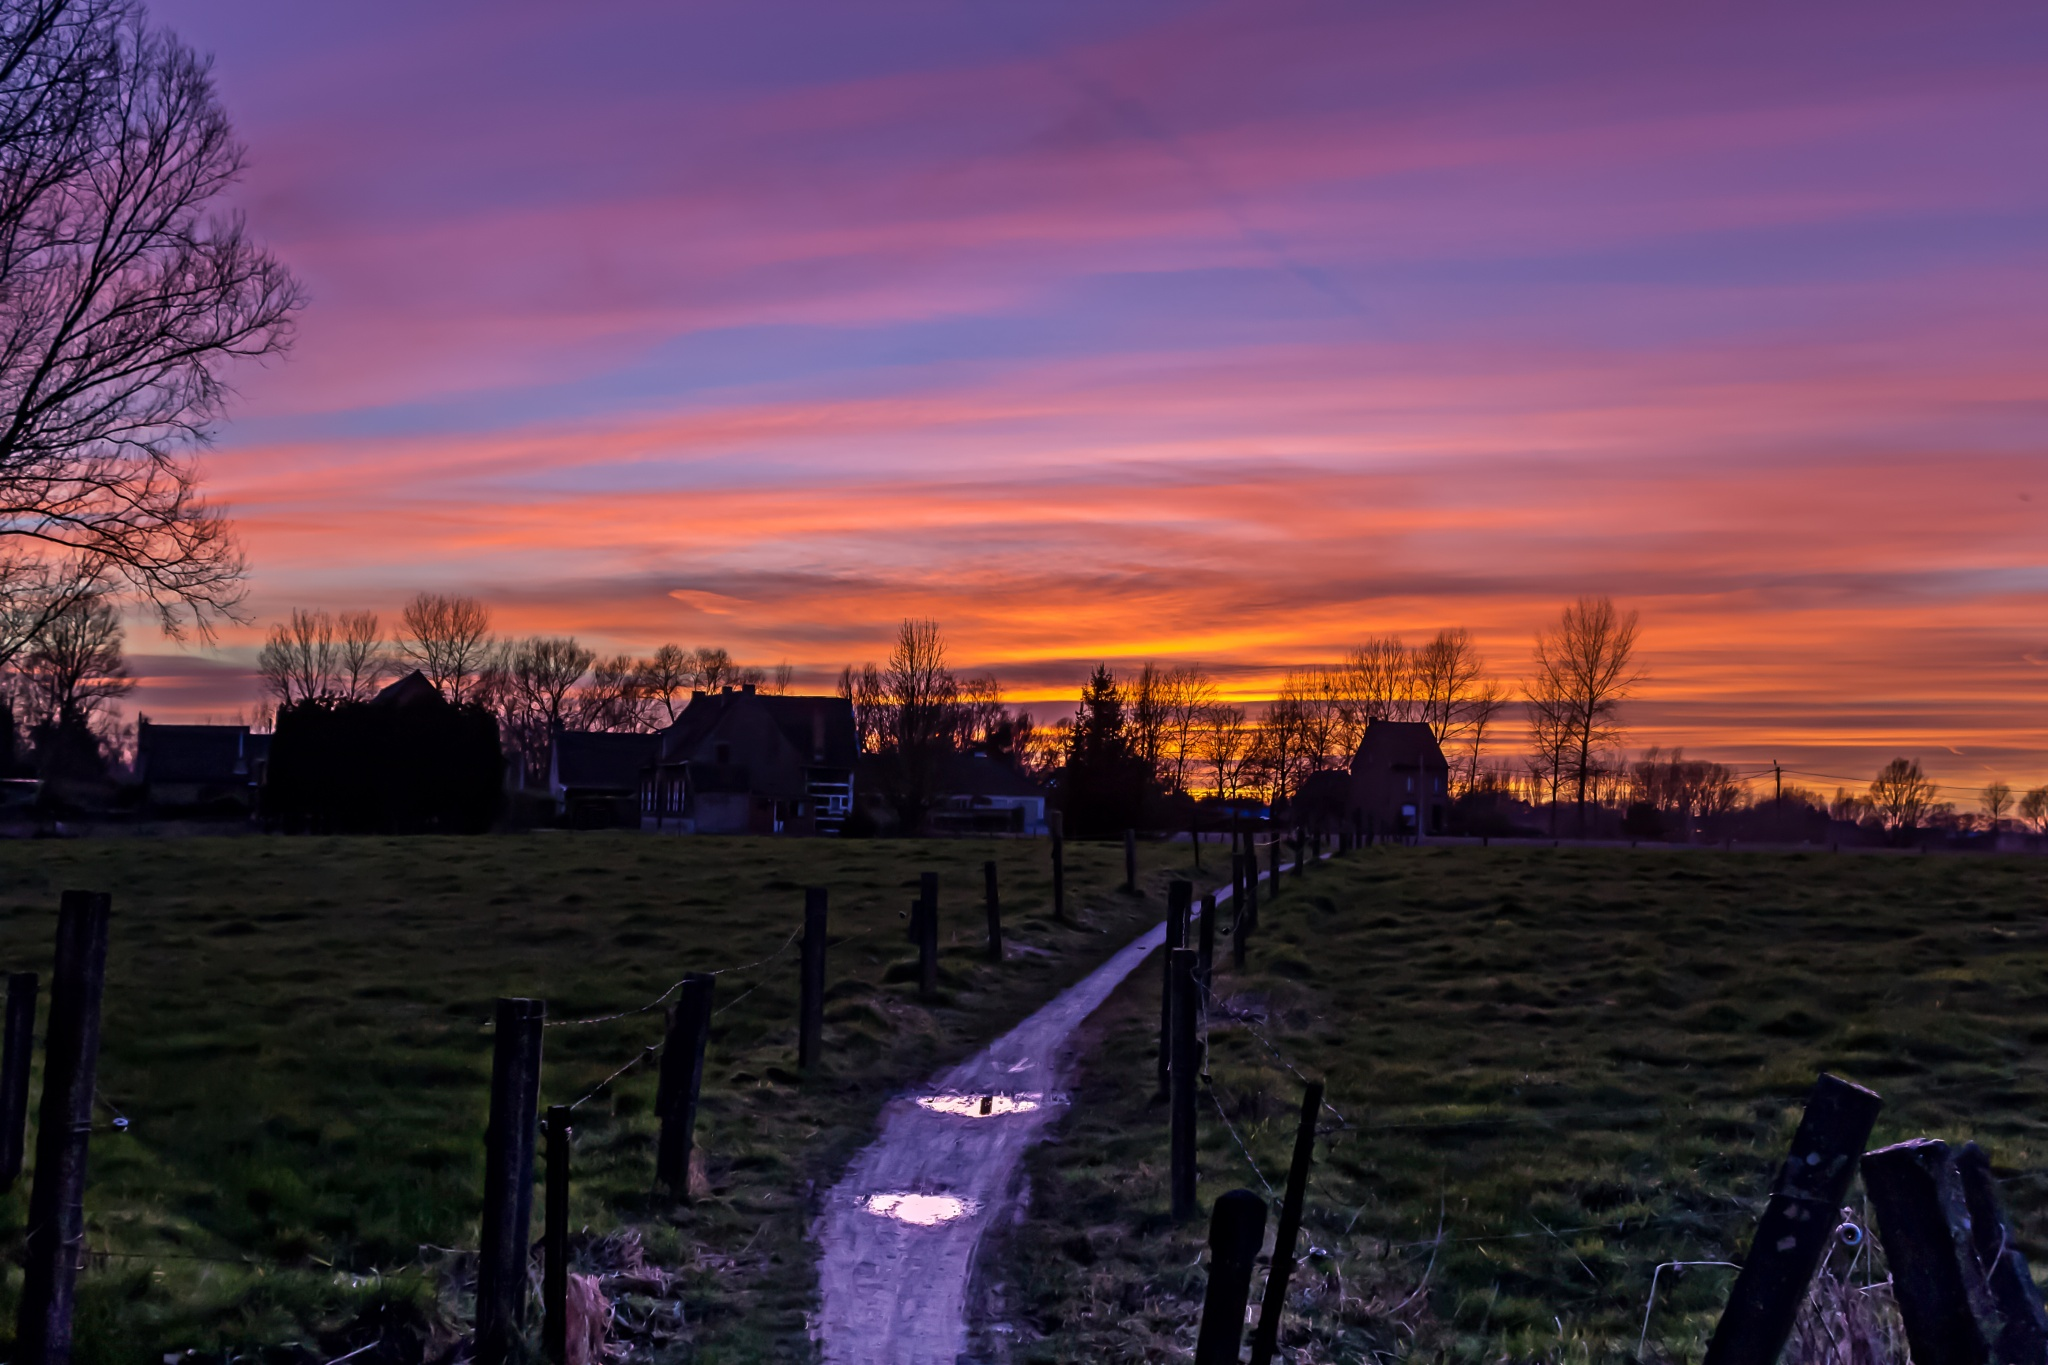 a winter sunset by matthewlawes123